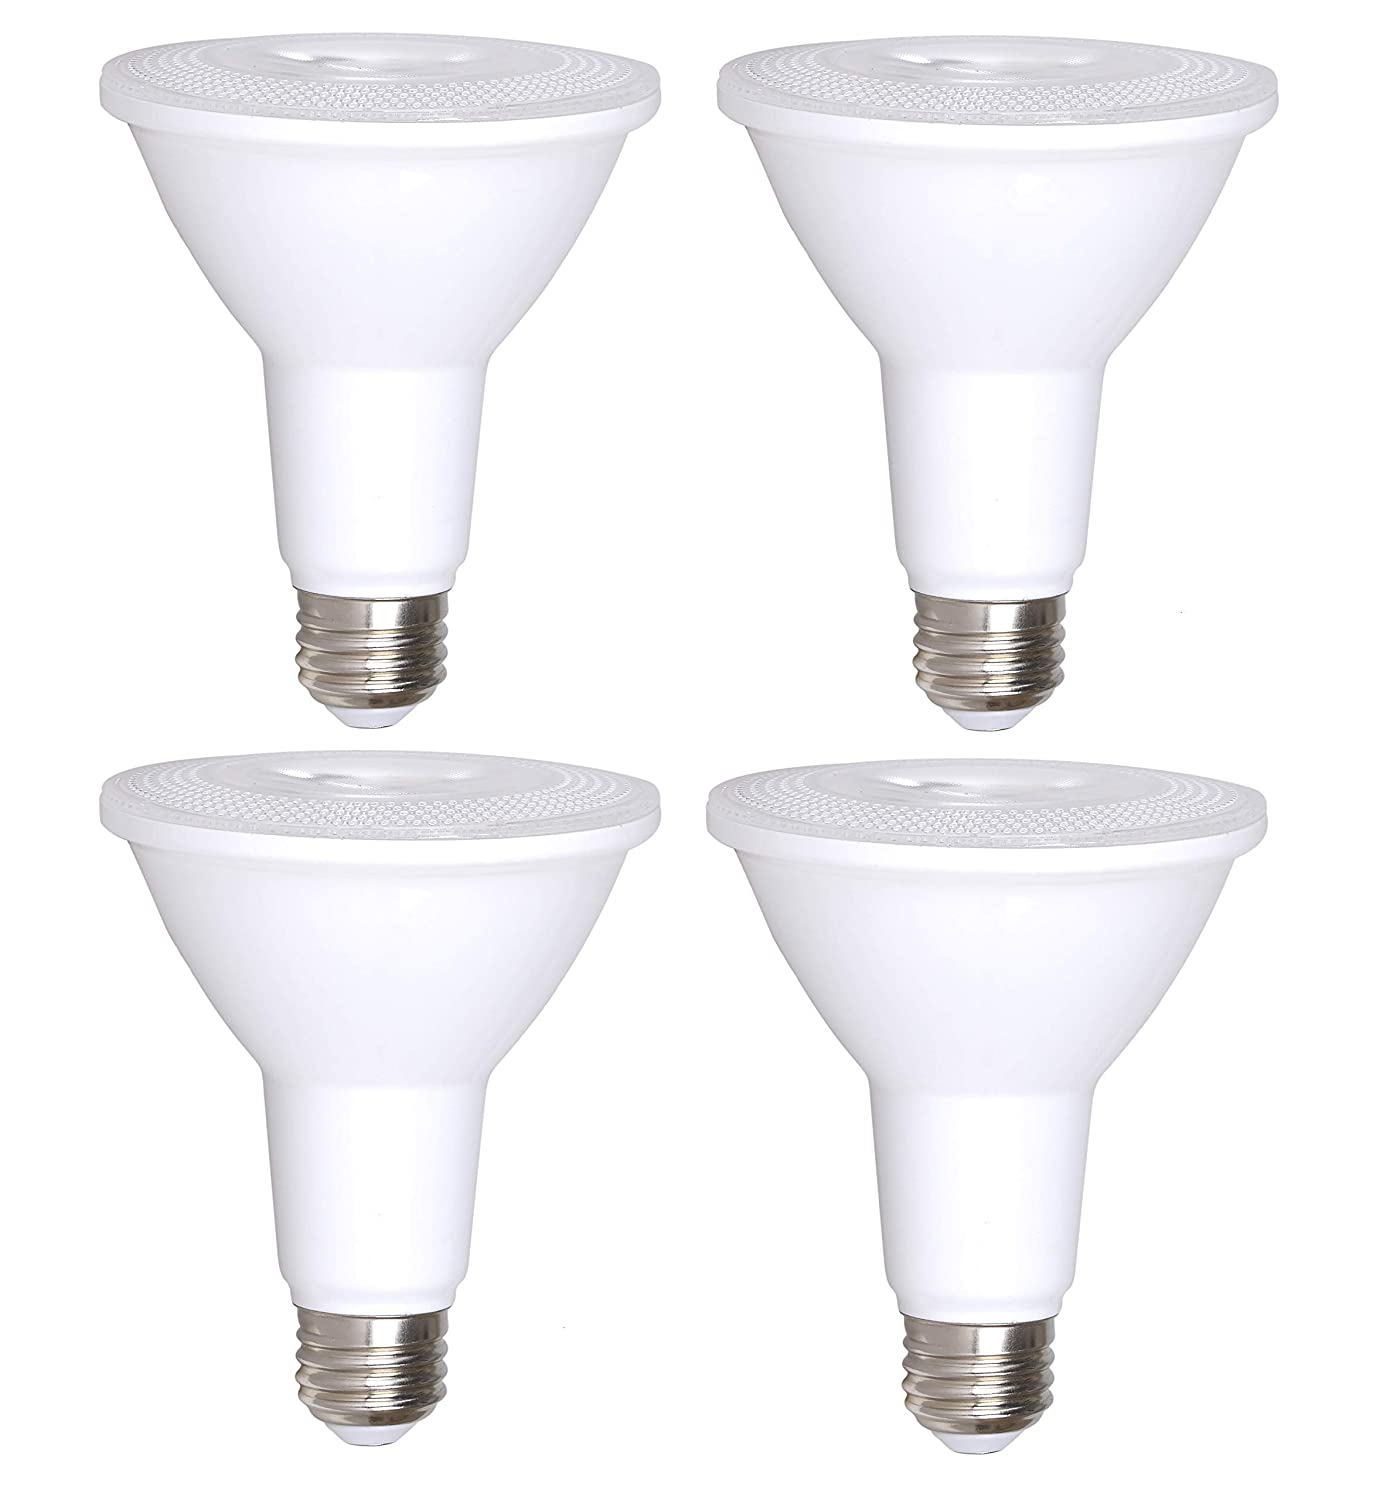 4 Pack Bioluz LED PAR30 LED Bulb, 12w Dimmable Flood Light Bulb, 100w Halogen Bulb Replacement, 850 Lumen 3000K Indoor/Outdoor UL Listed